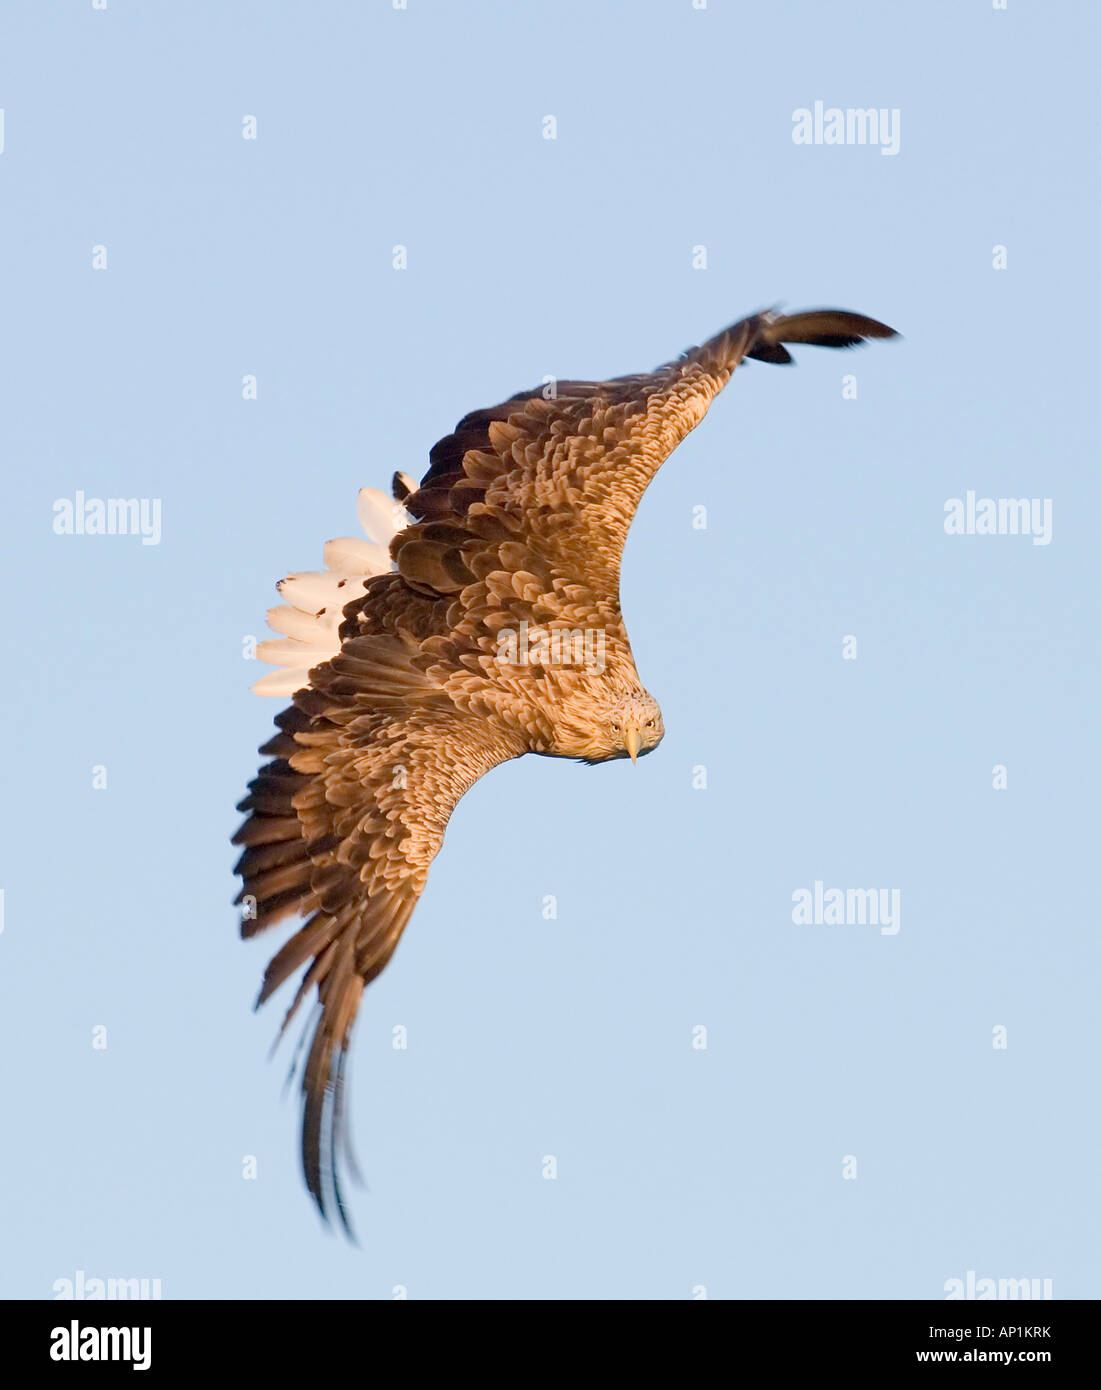 White tailed Eagle Sea Eagle Haliaeetus albicilla about to snatch fish from sea Flatanger Norway July - Stock Image